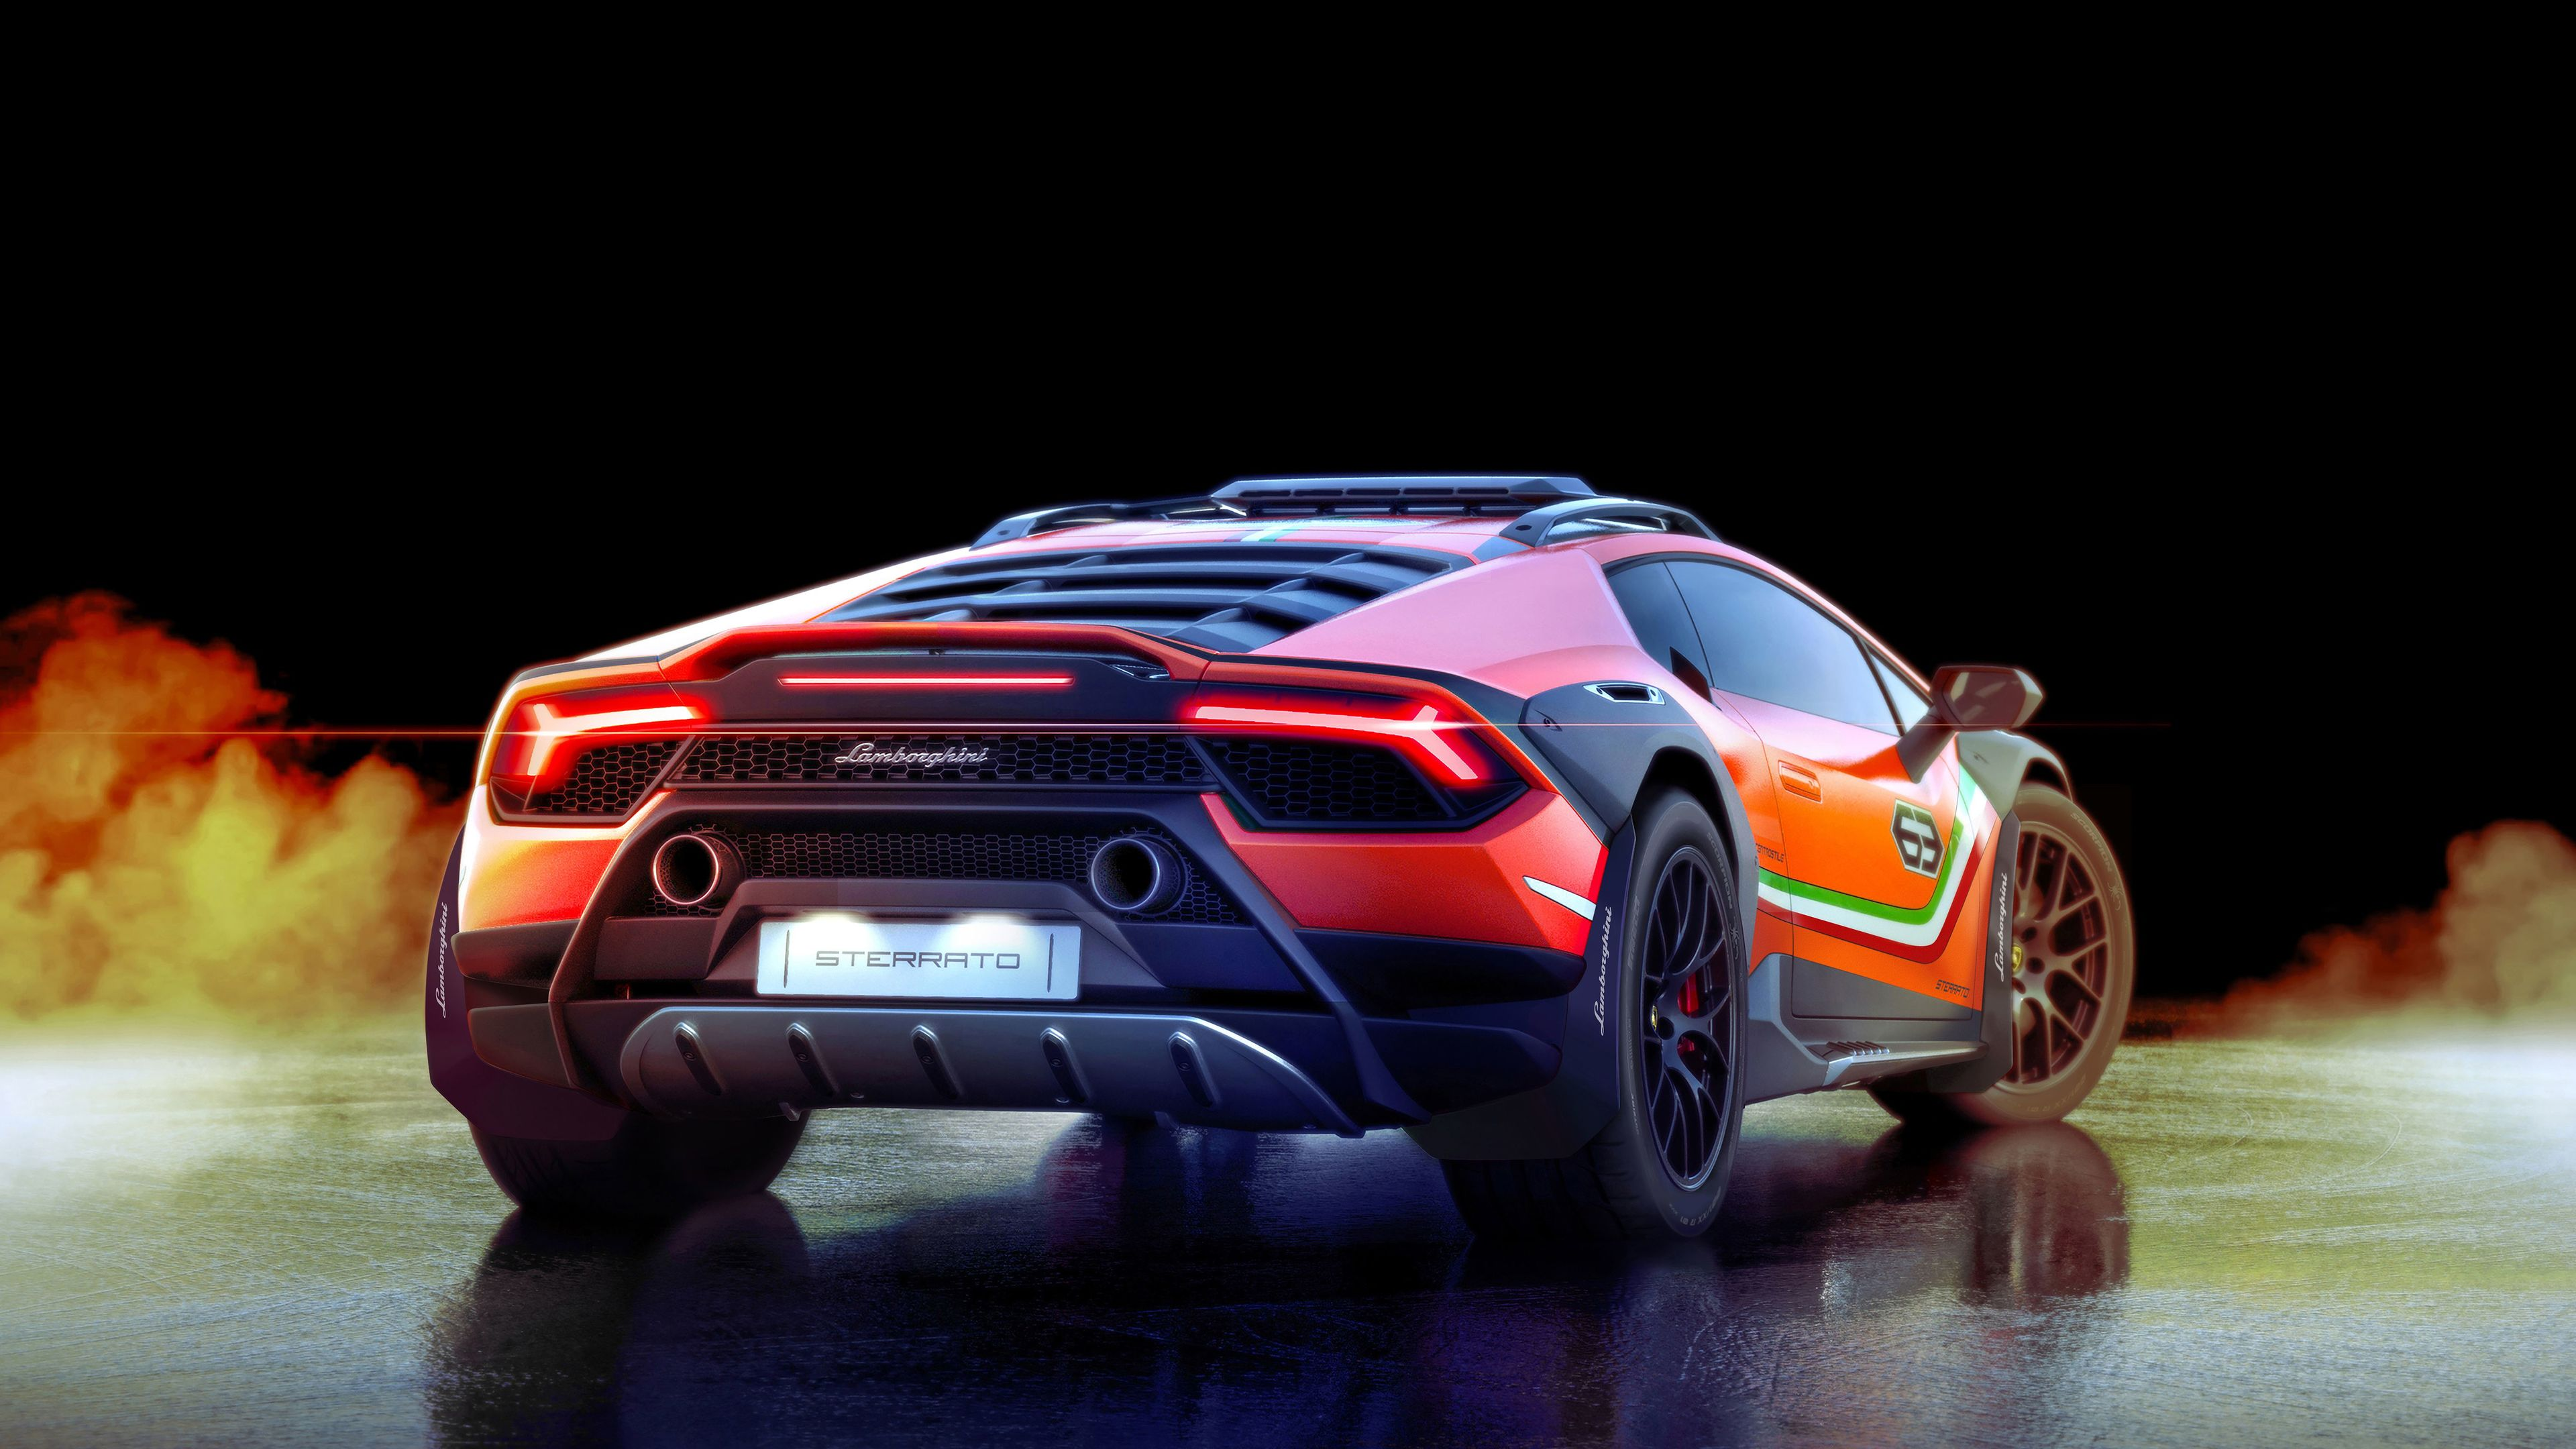 lamborghini huracan sterrato concept 2019 rear 1560534371 - Lamborghini Huracan Sterrato Concept 2019 Rear - lamborghini wallpapers, lamborghini huracan wallpapers, lamborghini huracan sterrato wallpapers, hd-wallpapers, cars wallpapers, 4k-wallpapers, 2019 cars wallpapers